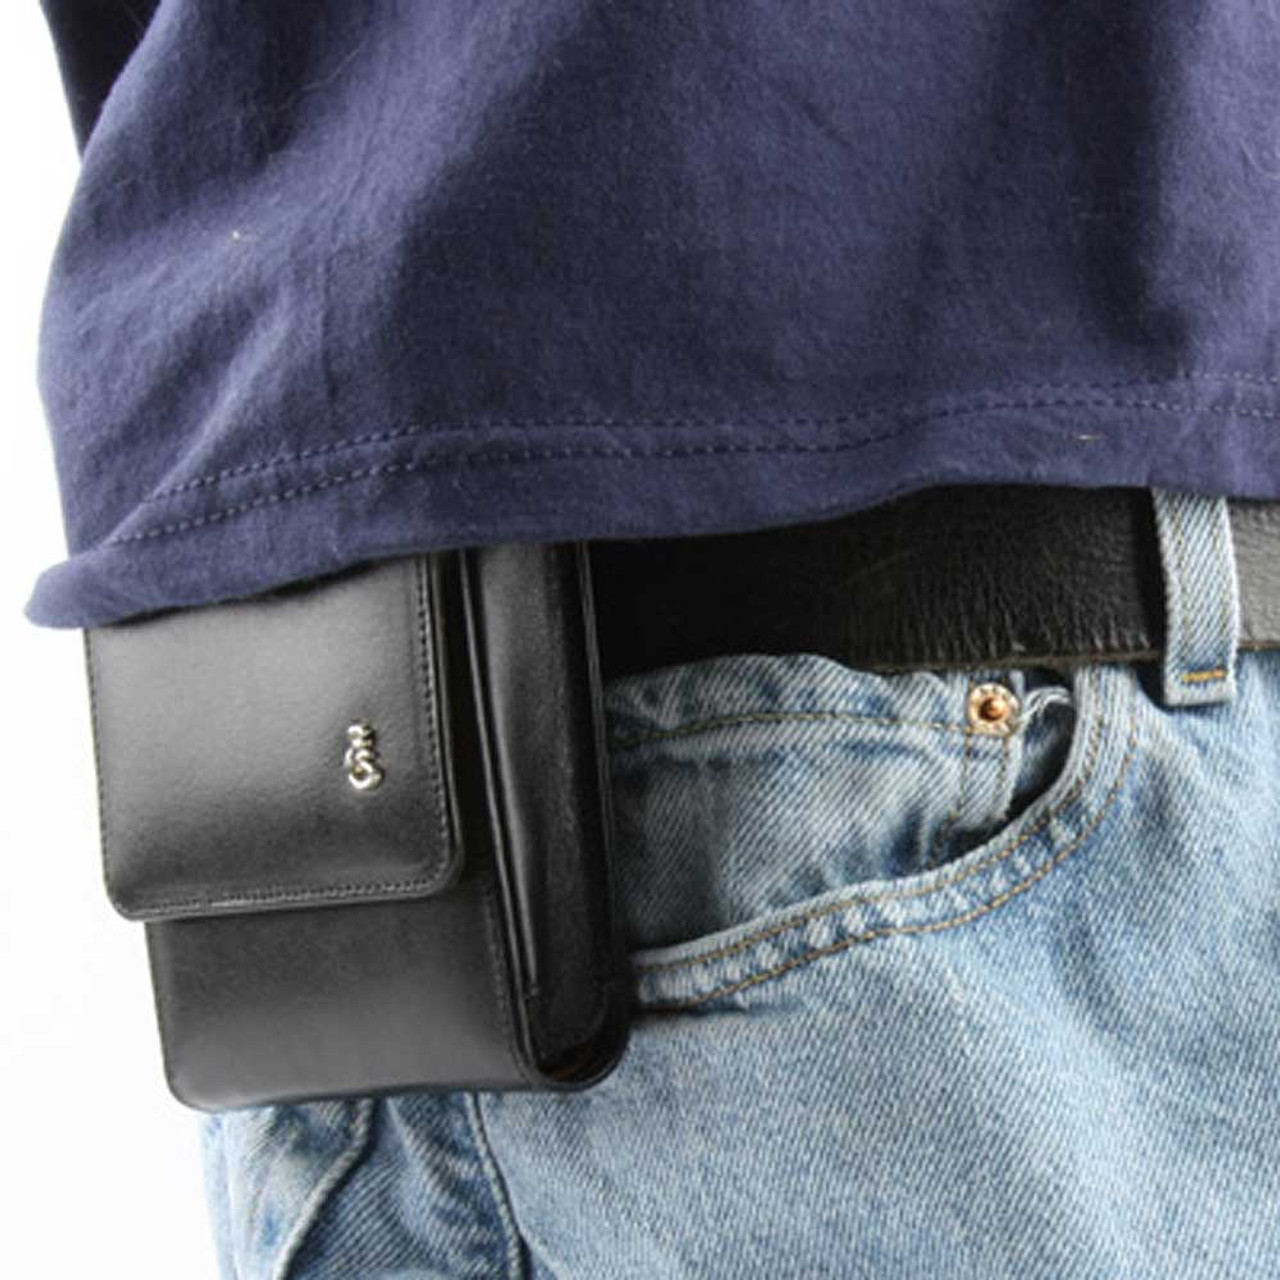 Kahr P40 Sneaky Pete Holster (Belt Clip)